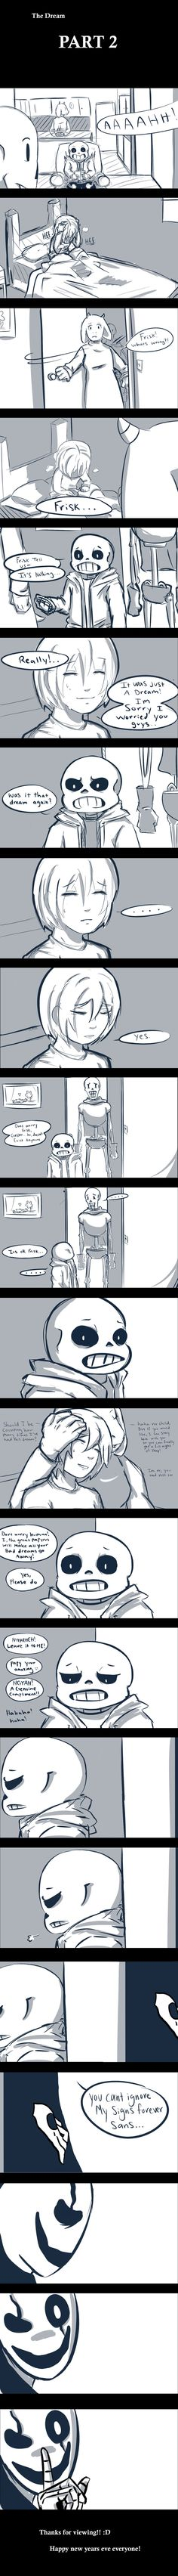 "The Dream Part 2 Undertale fan comic/Frisk/Gaster/sans/papyrus/toriel CHECK OUT THE SEQUEL ""RESET"""